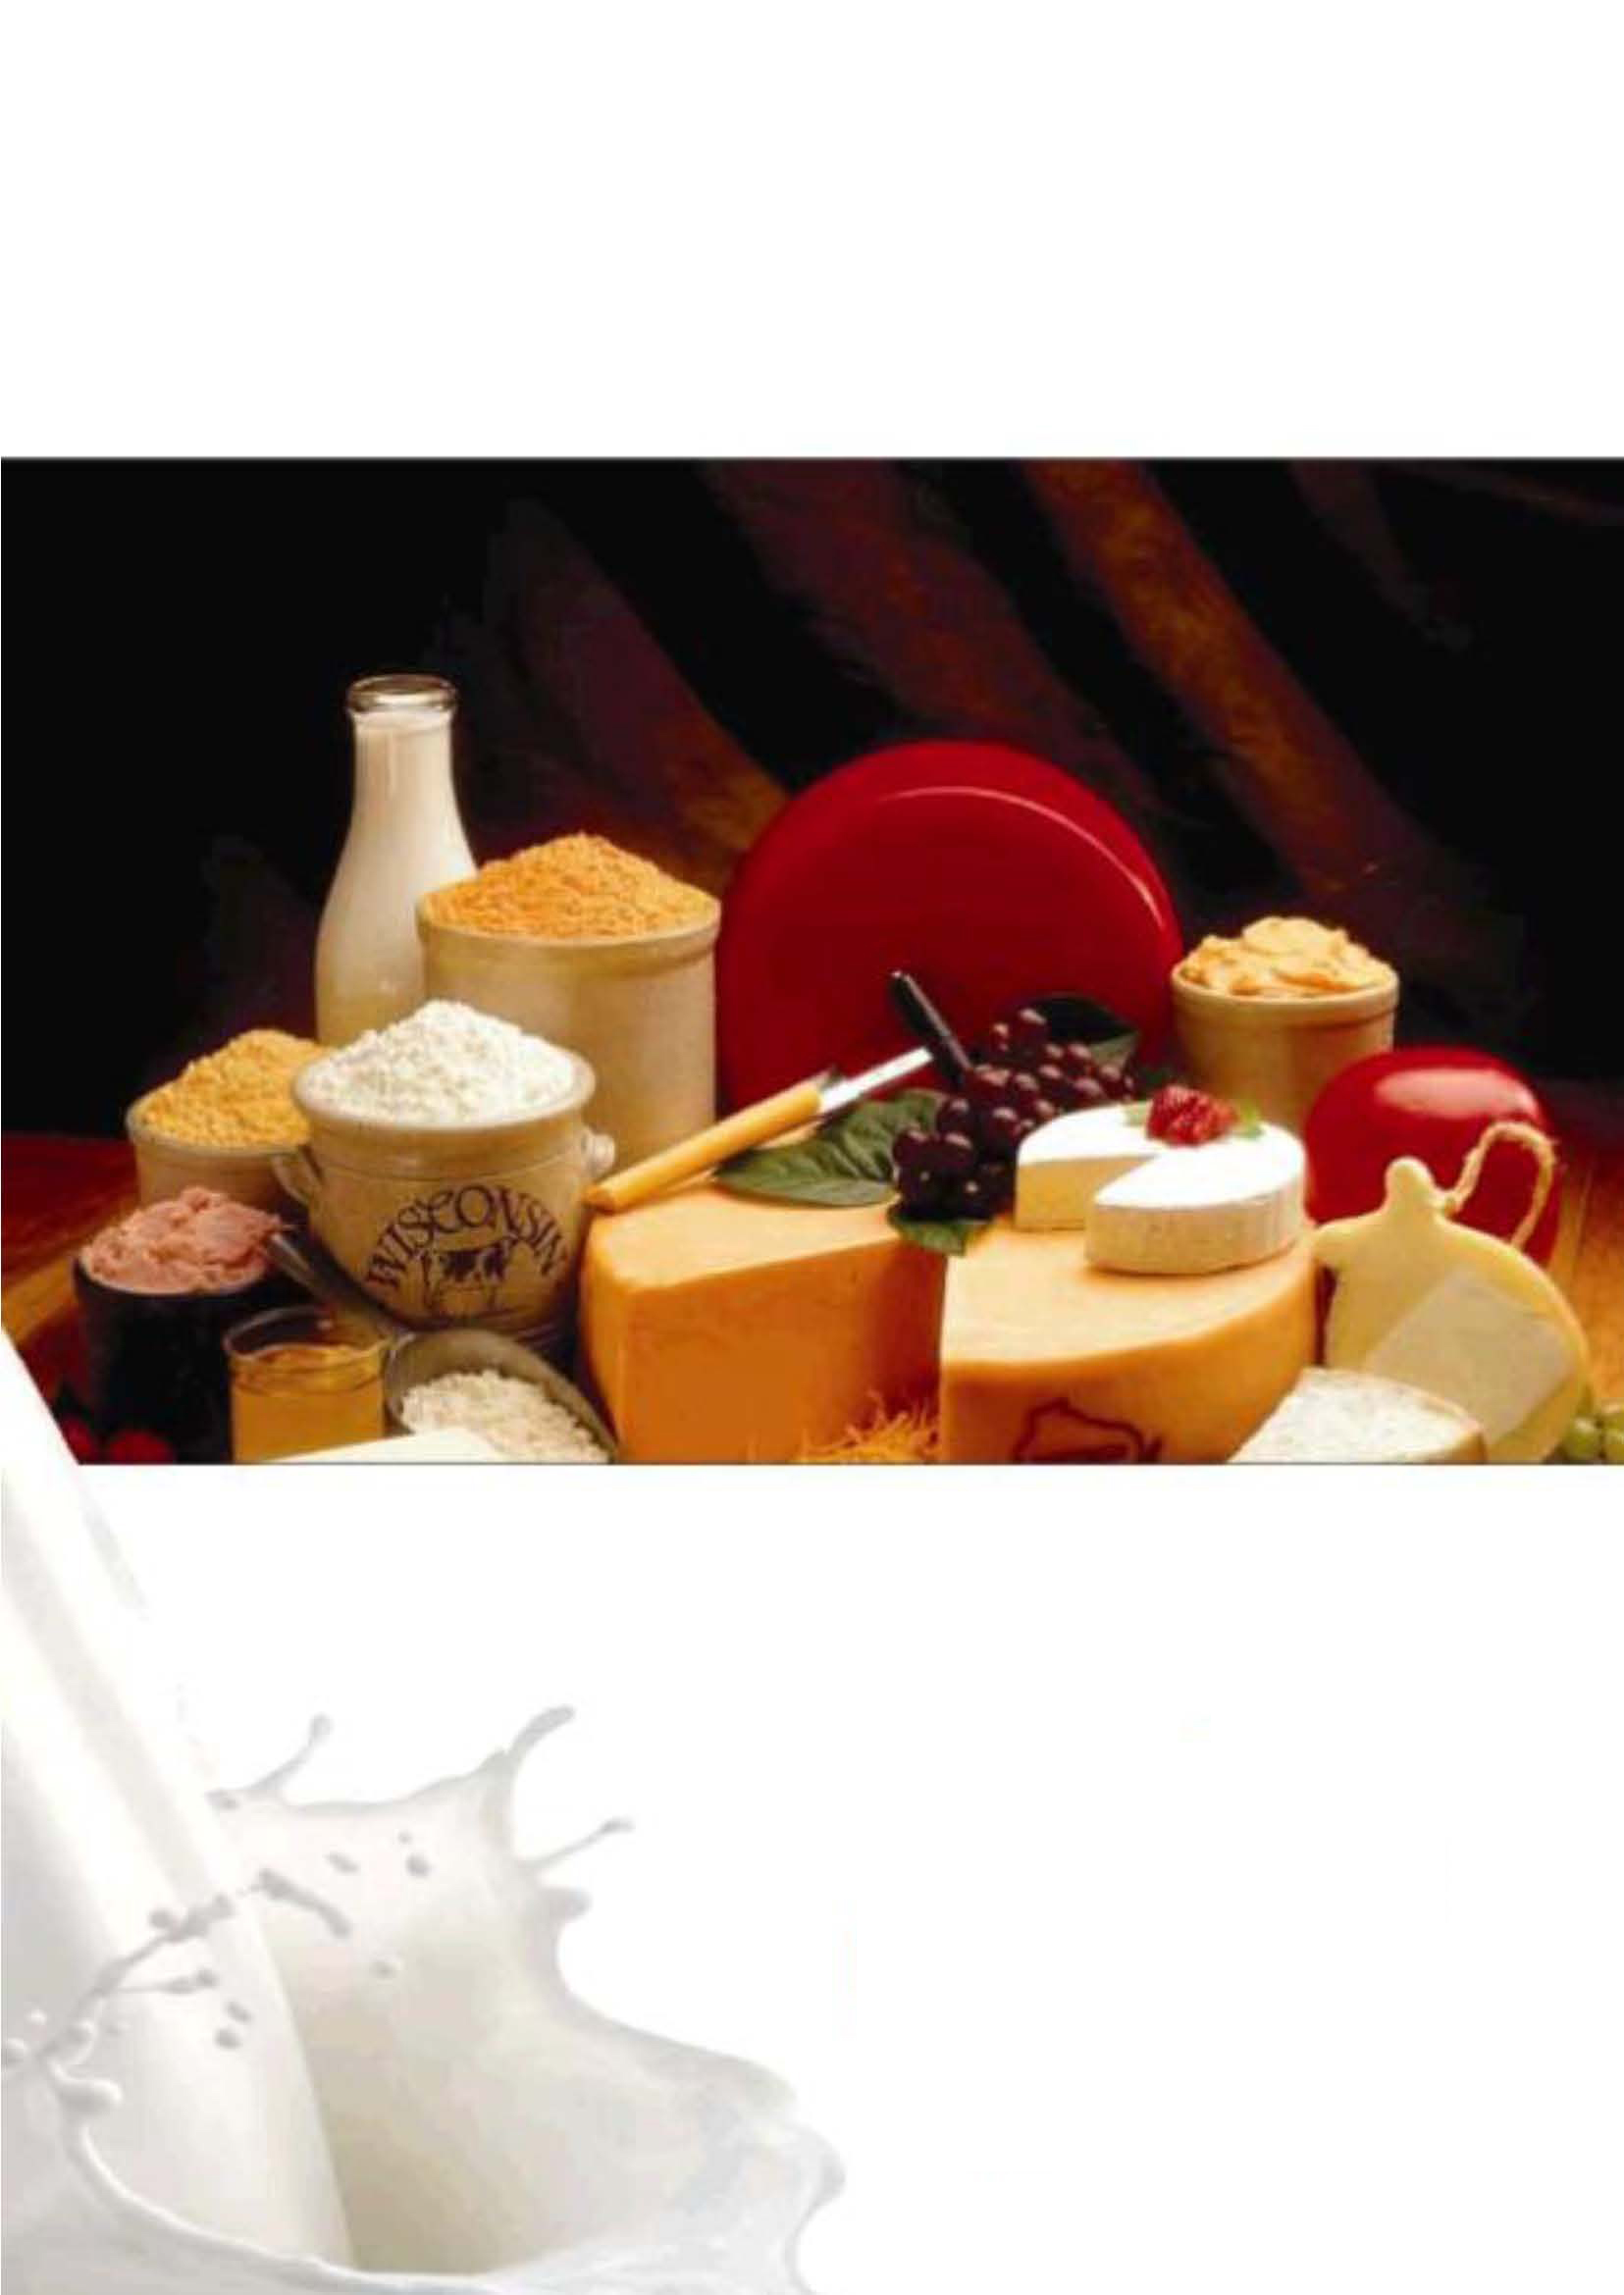 Dairy Products China News